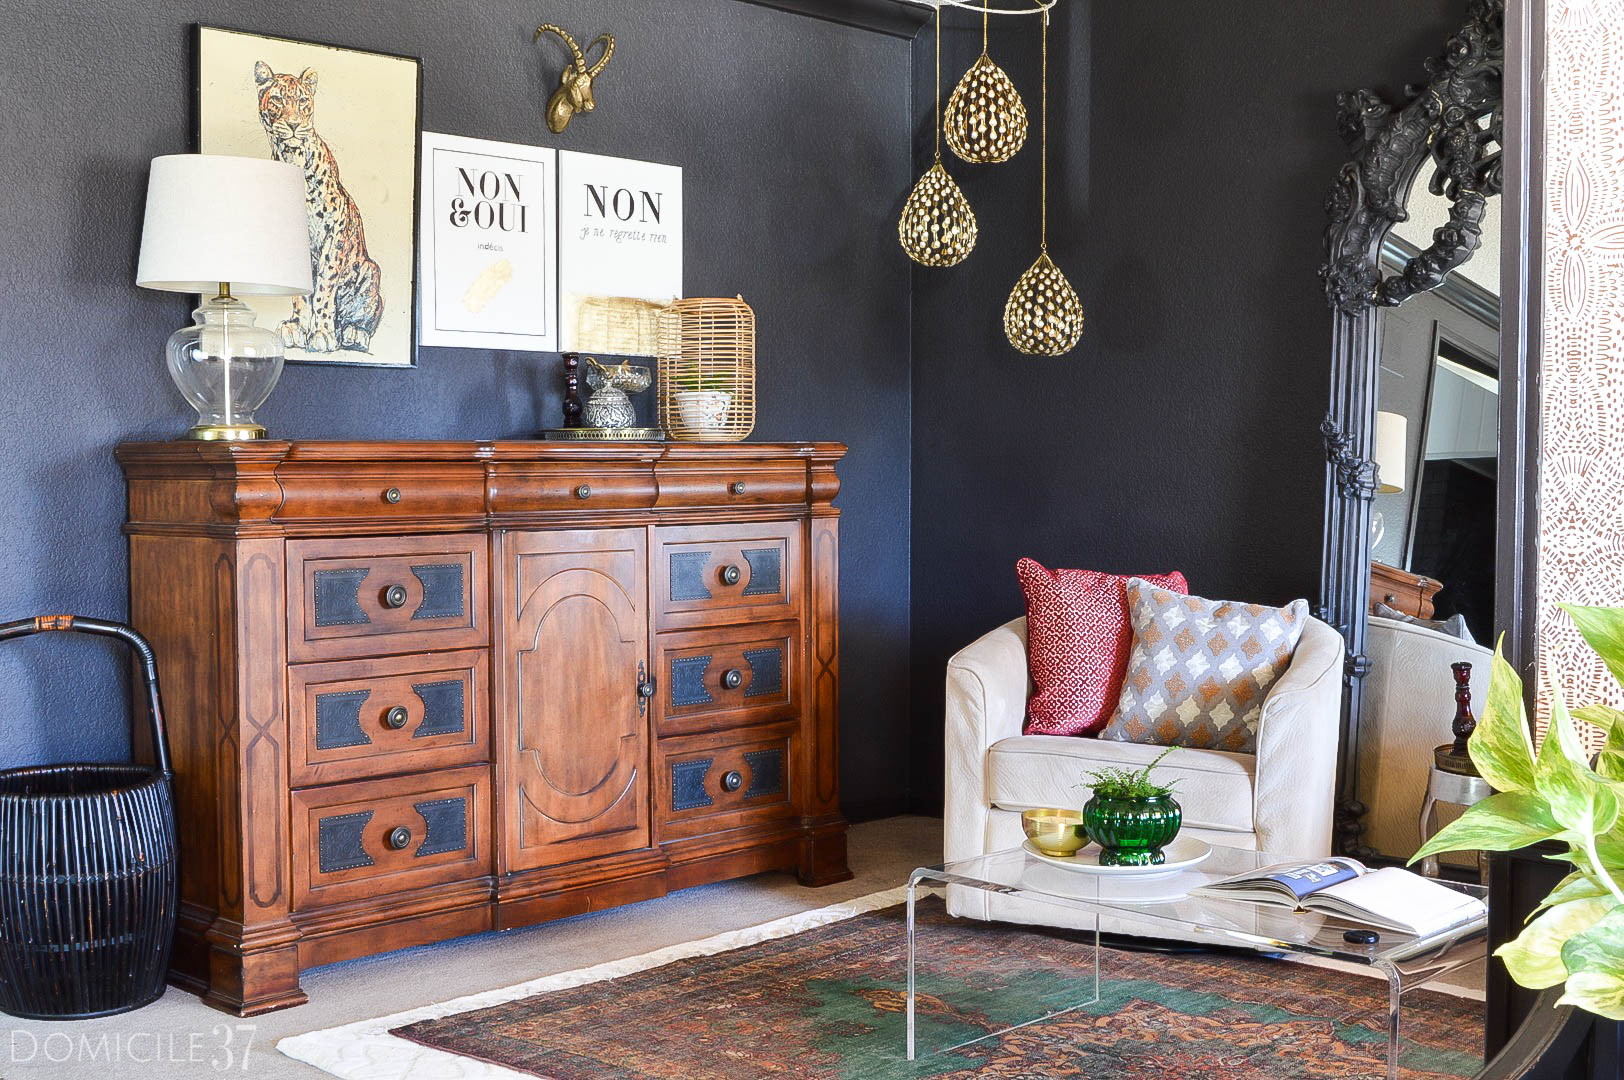 Vintage Eclectic Sitting room inspired by Moroccan decor | Layered persian rugs | Dresser console on black wall with chic art | vintage art | acrylic coffee table with swivel chairs